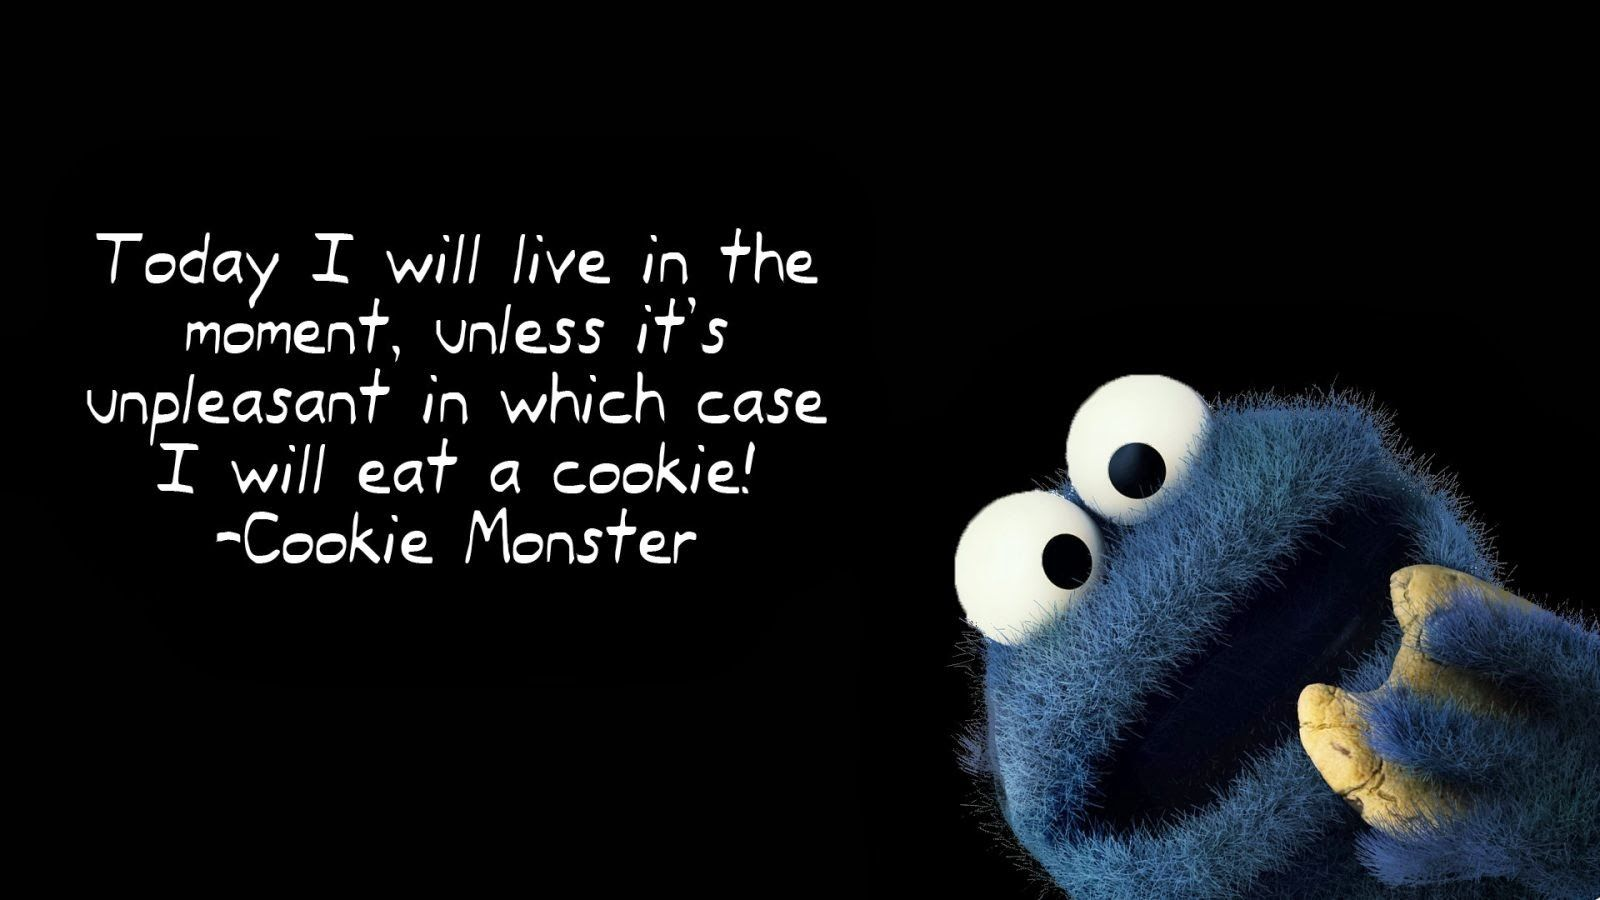 Very Funny Wallpapers For Desktop Funny Quotes Wallpaper Cookie Monster Quotes Monster Quotes